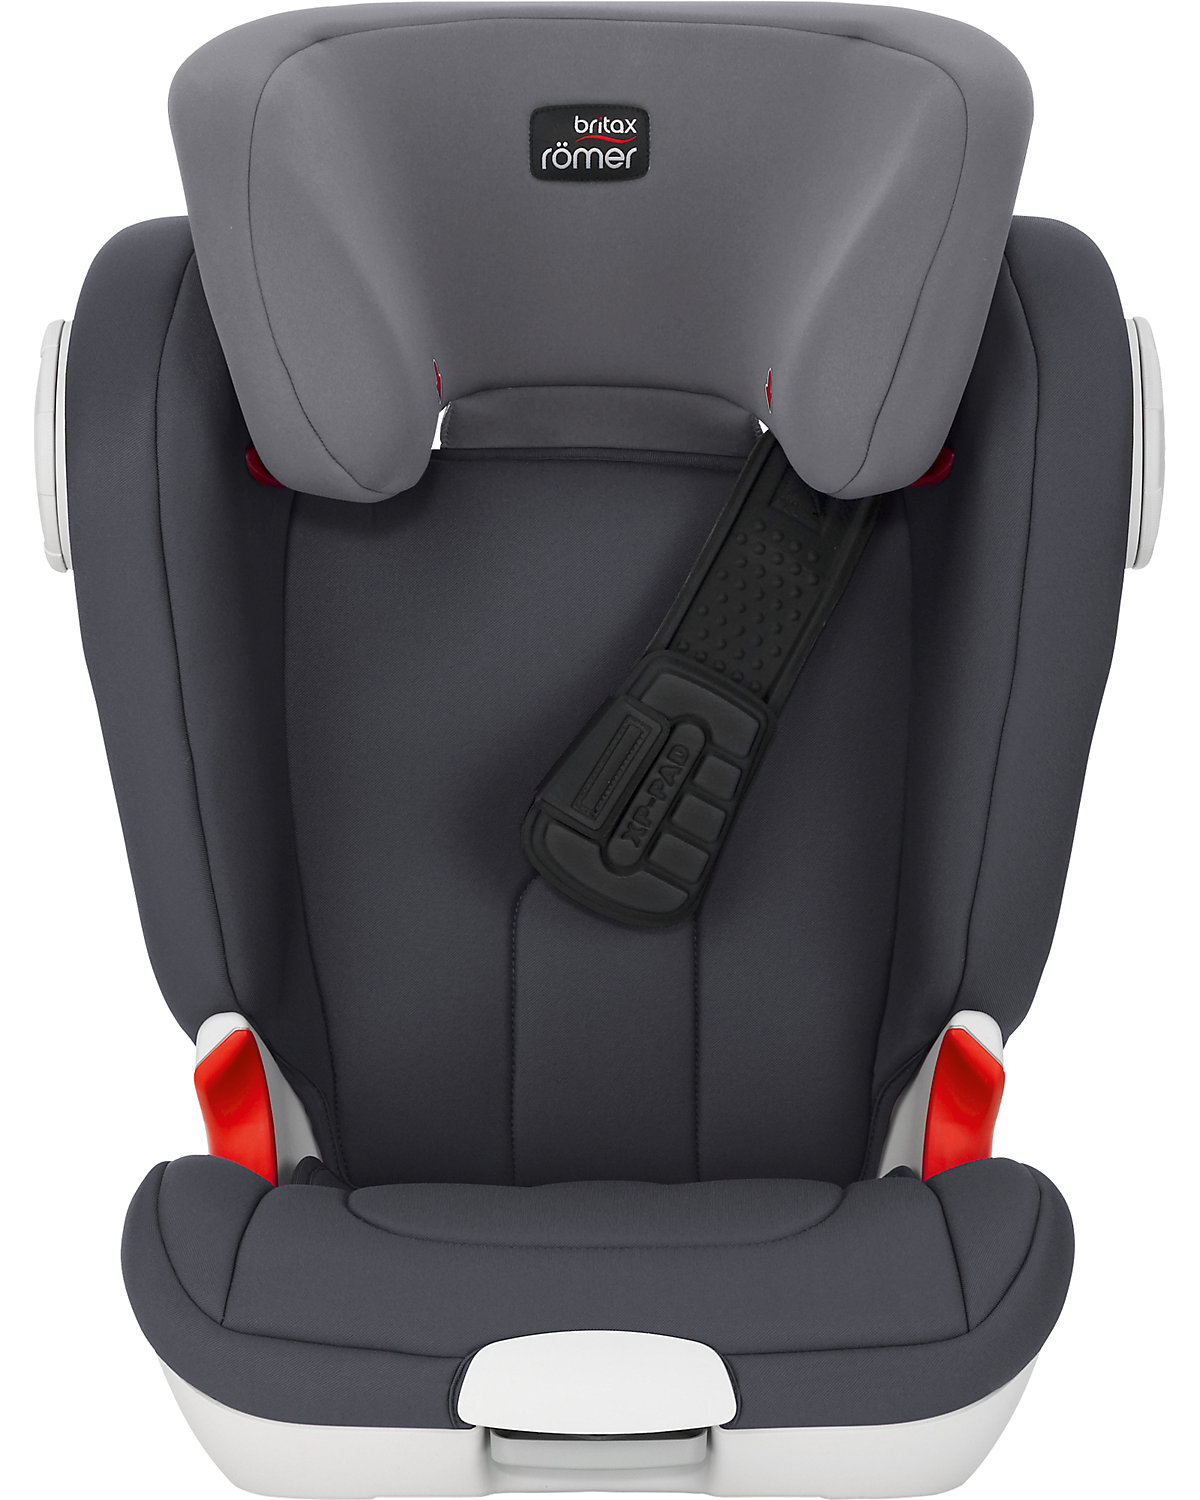 auto kindersitz kidfix xp sict storm grey britax r mer mytoys. Black Bedroom Furniture Sets. Home Design Ideas